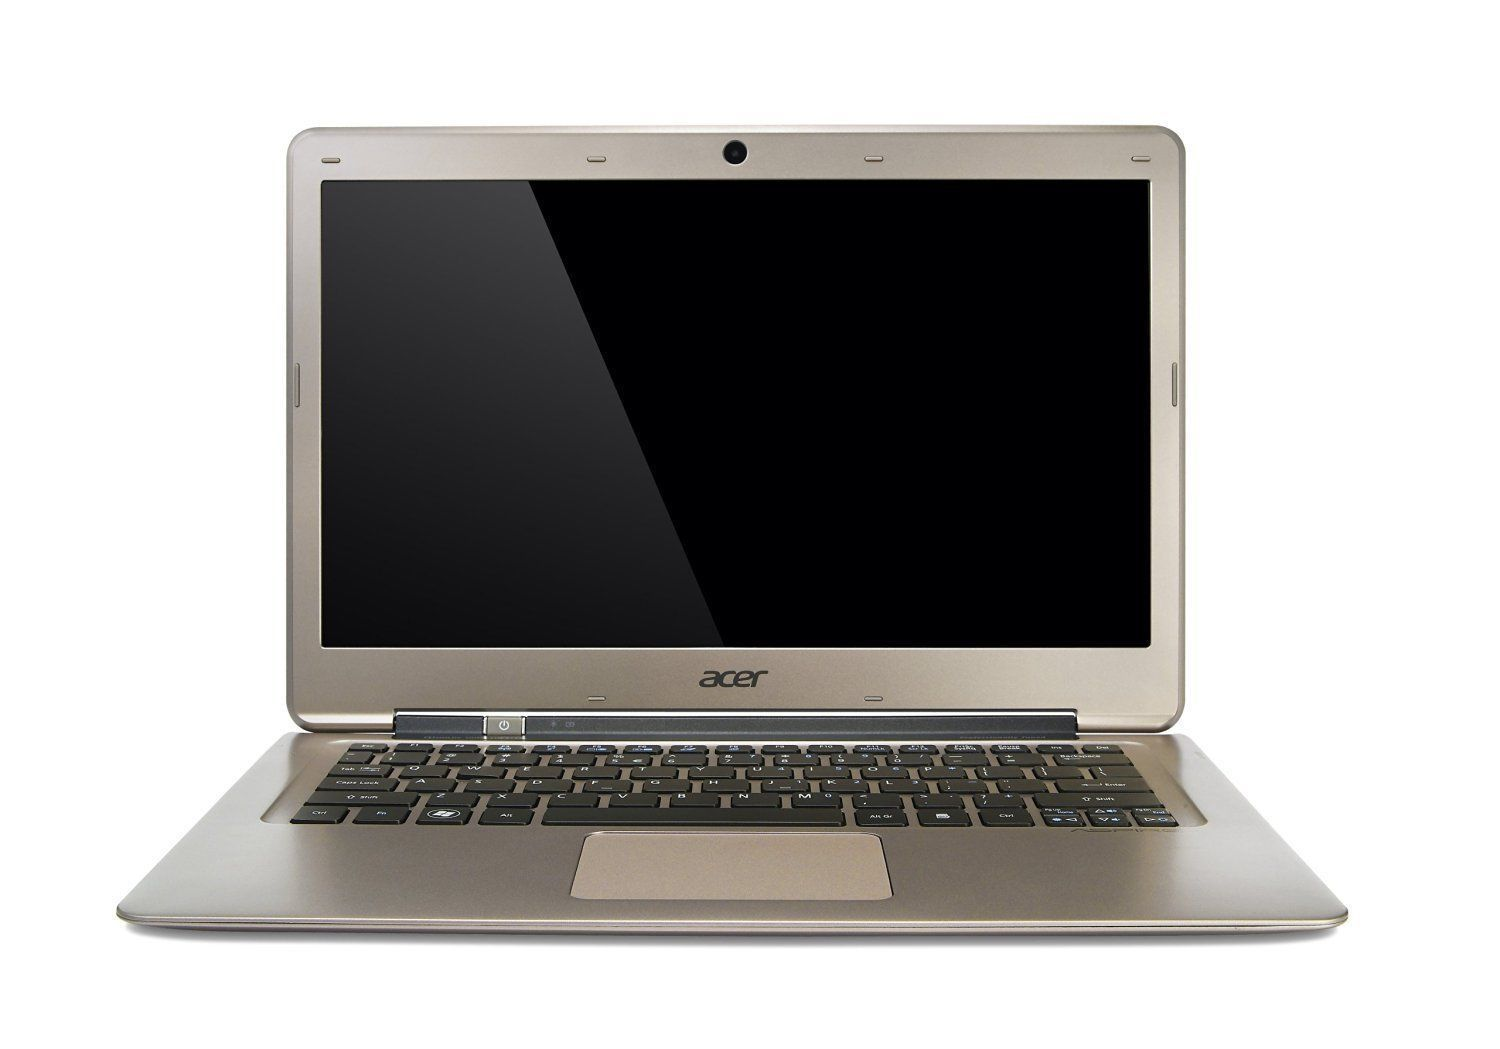 Buy Customize Acer Aspire Laptop S3 I7 USED Online